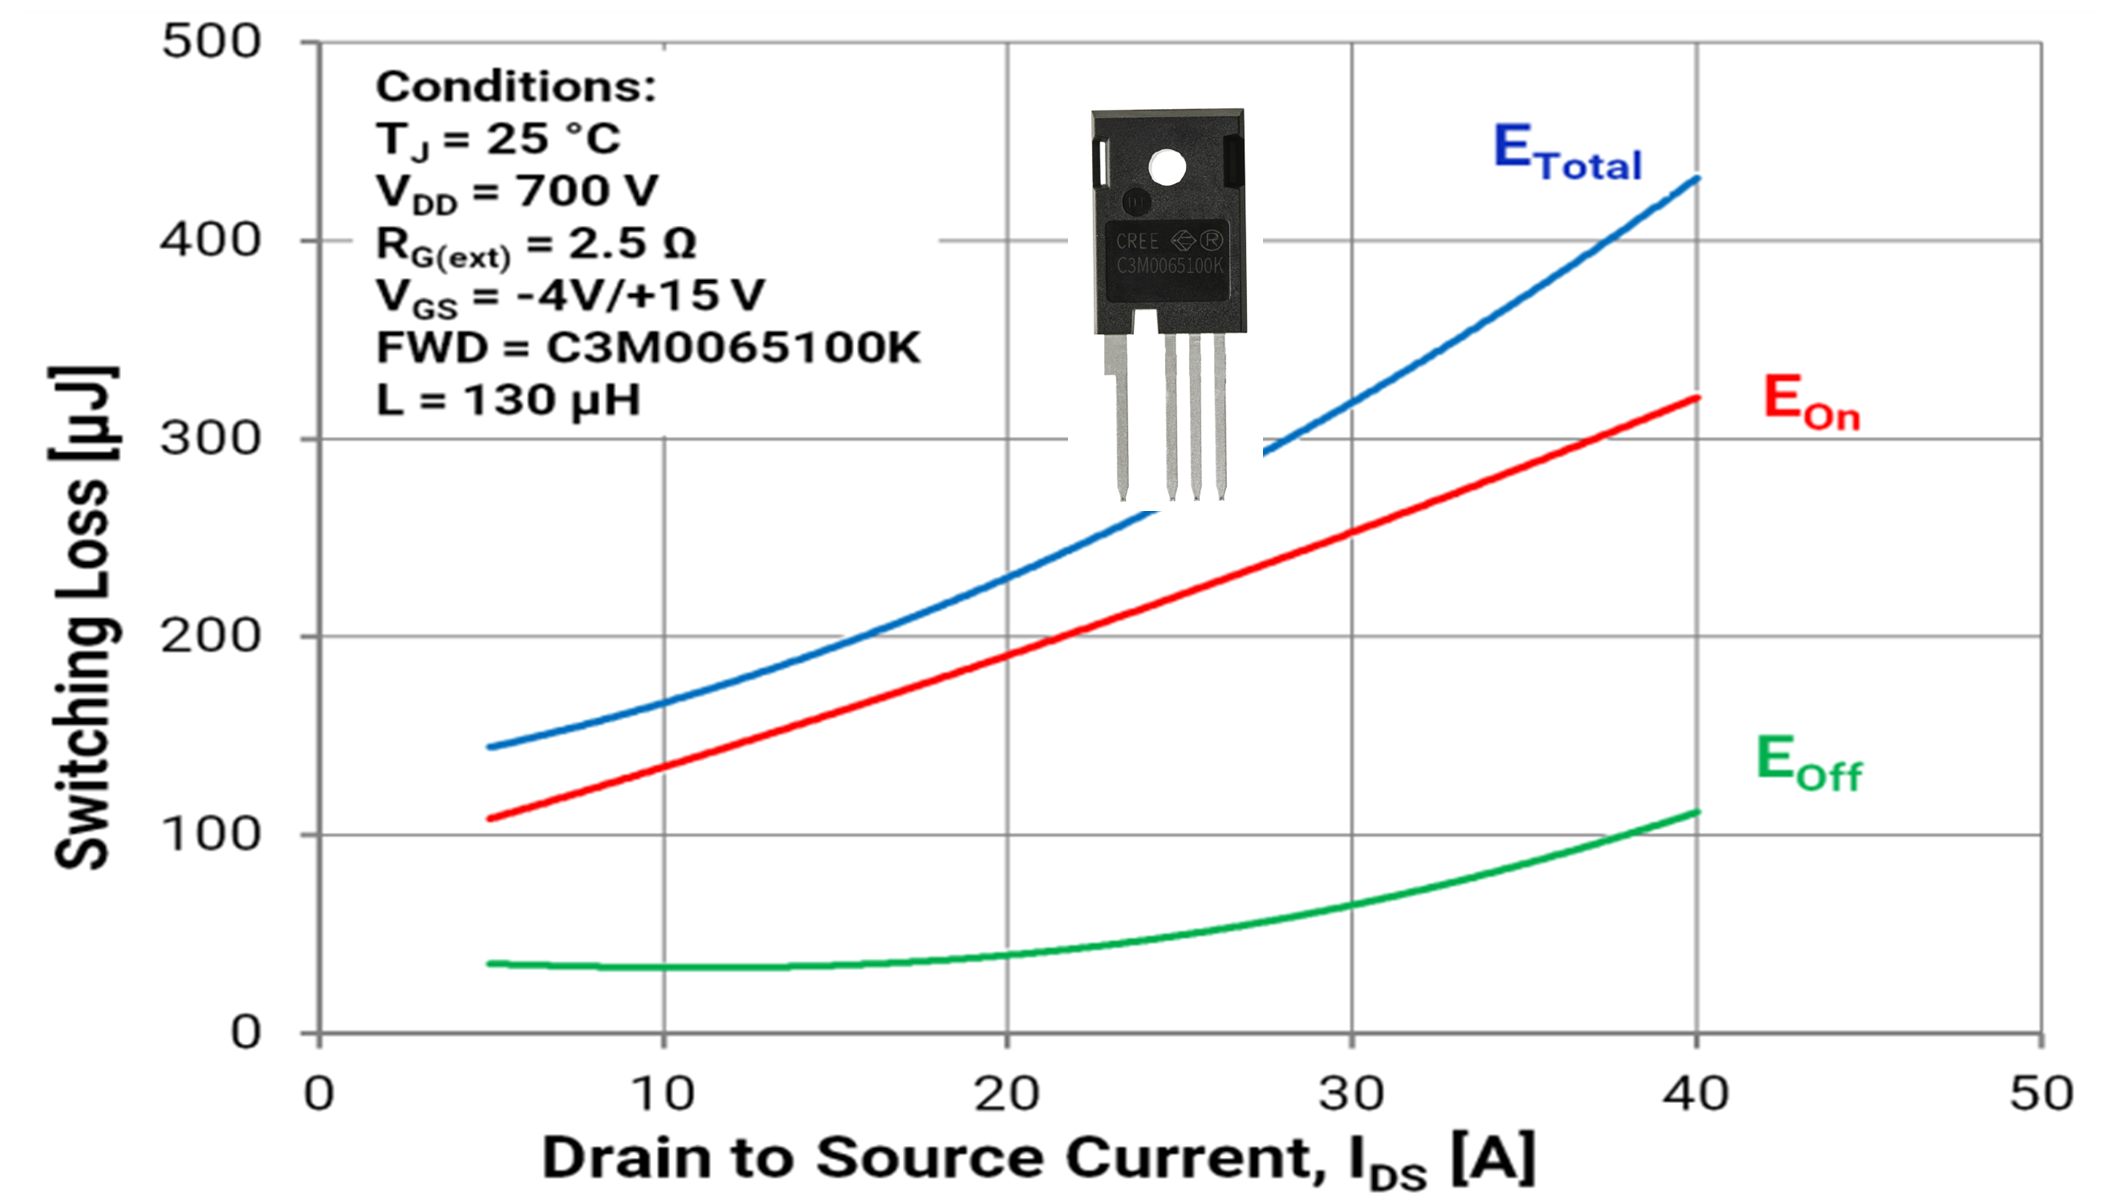 Wolfspeed Sic Mosfets Enable Radical Improvements In Efficiency Ips Ups Circuit Diagram Figure 4 Switching Loss As A Funcion Of Drain Current For New 1000 V